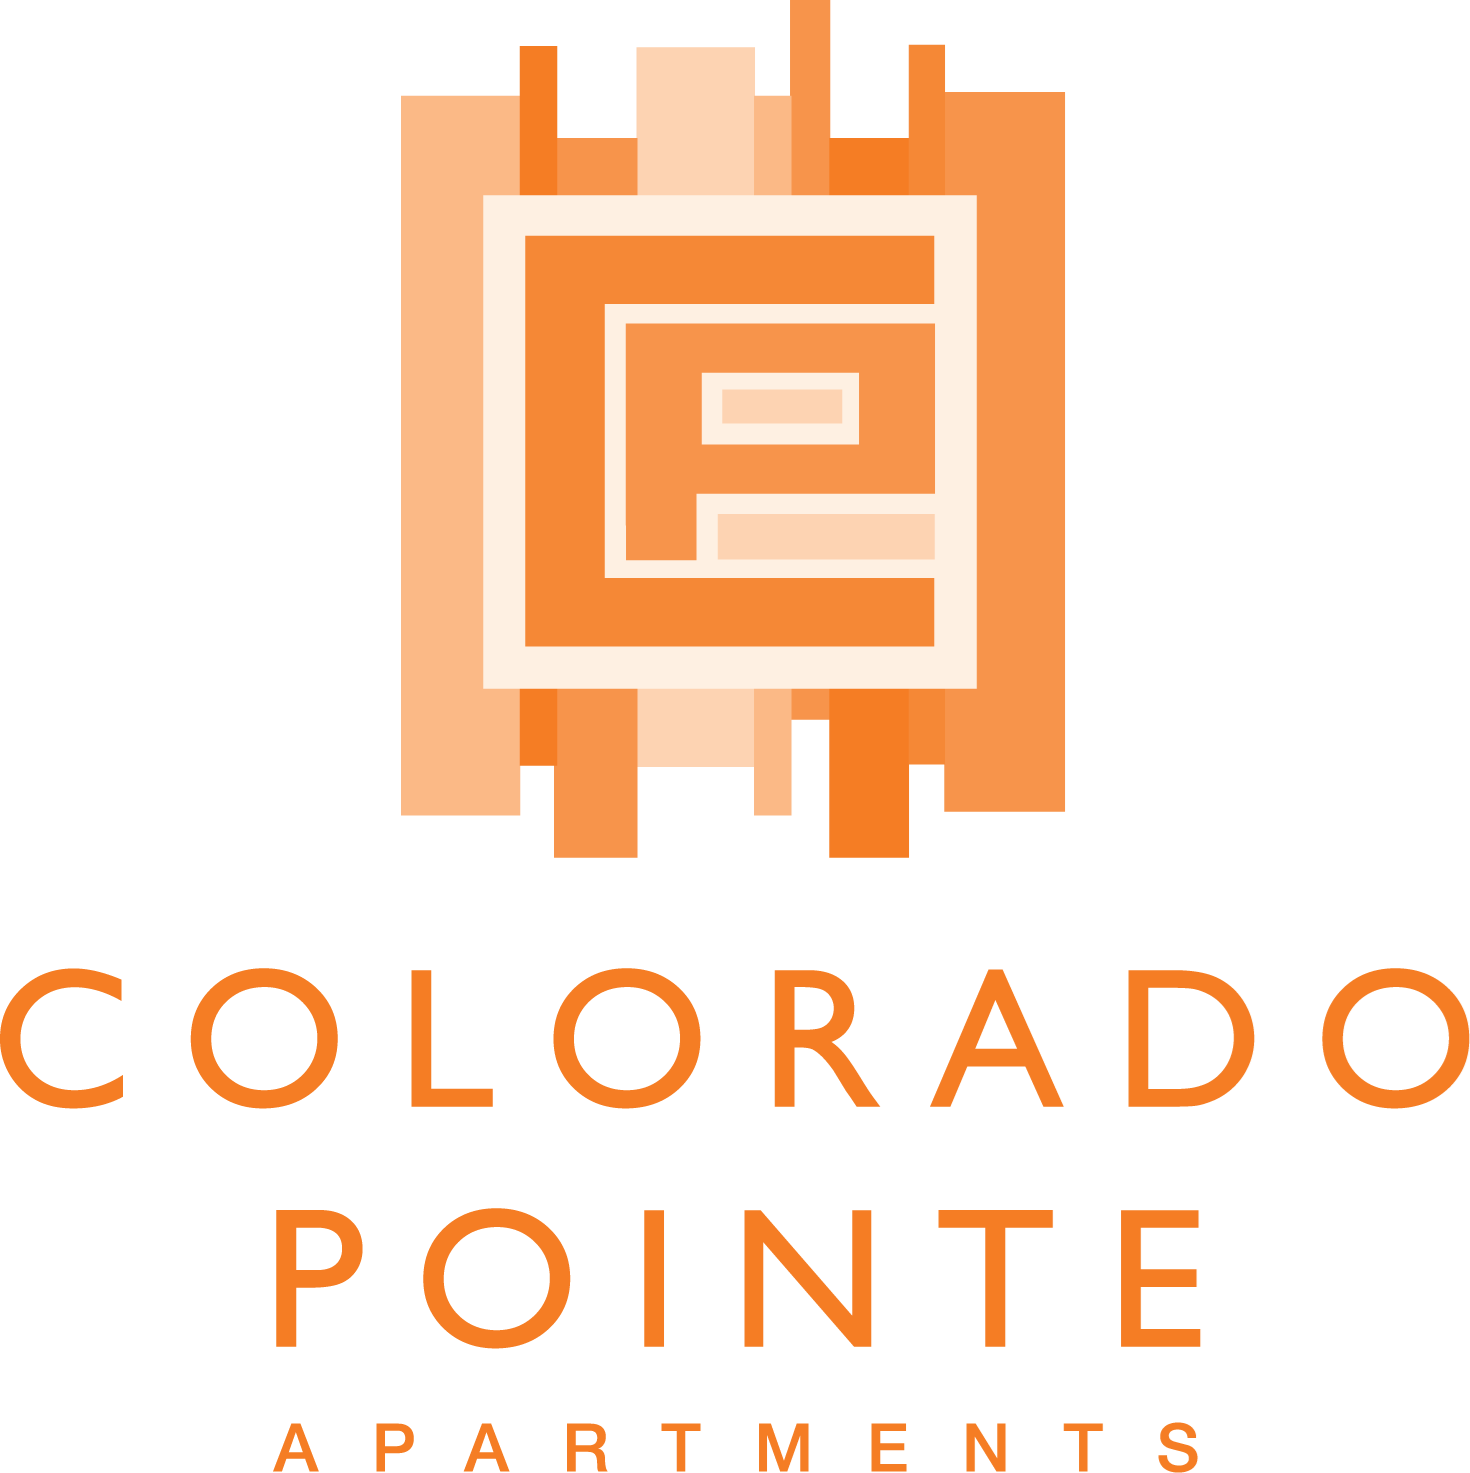 Colorado Pointe Apartments Property Logo 82